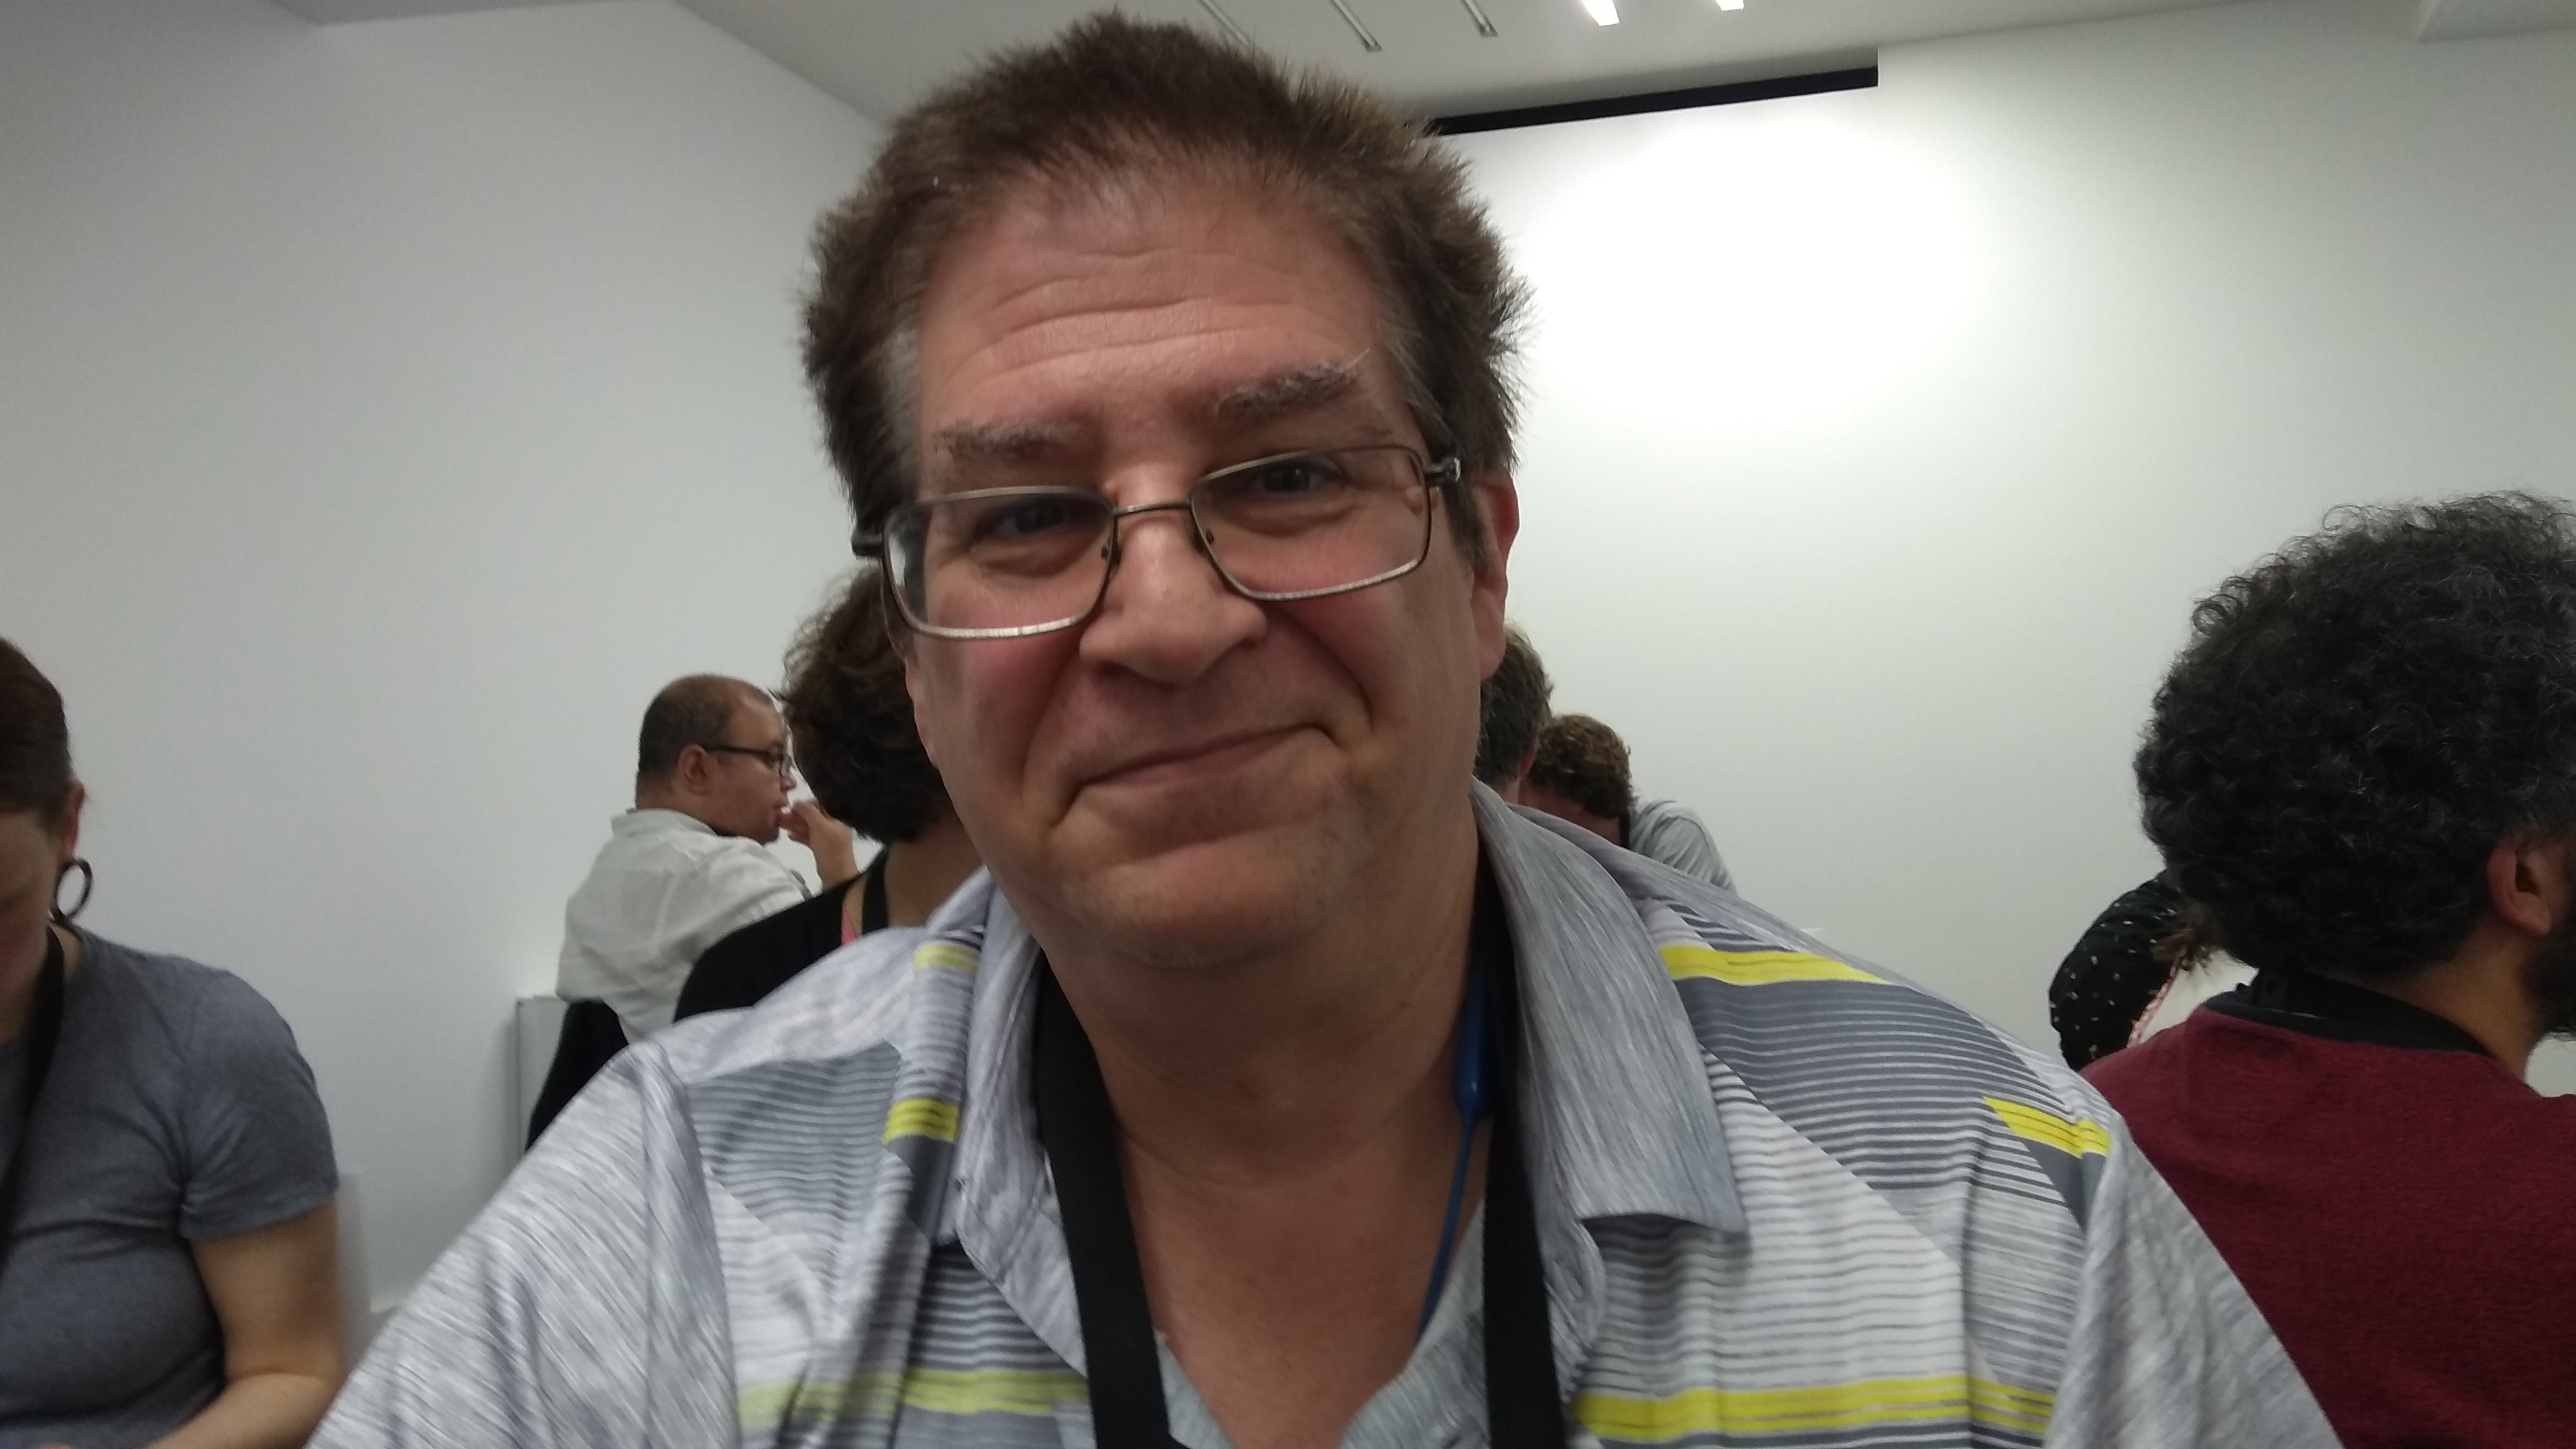 25 December 2020 English Evan Leibovitch, from LPI the Linux Professional Institute. May 2019 at Lisbon. Photo copyleft by Frederick Noronha (FN). Creative